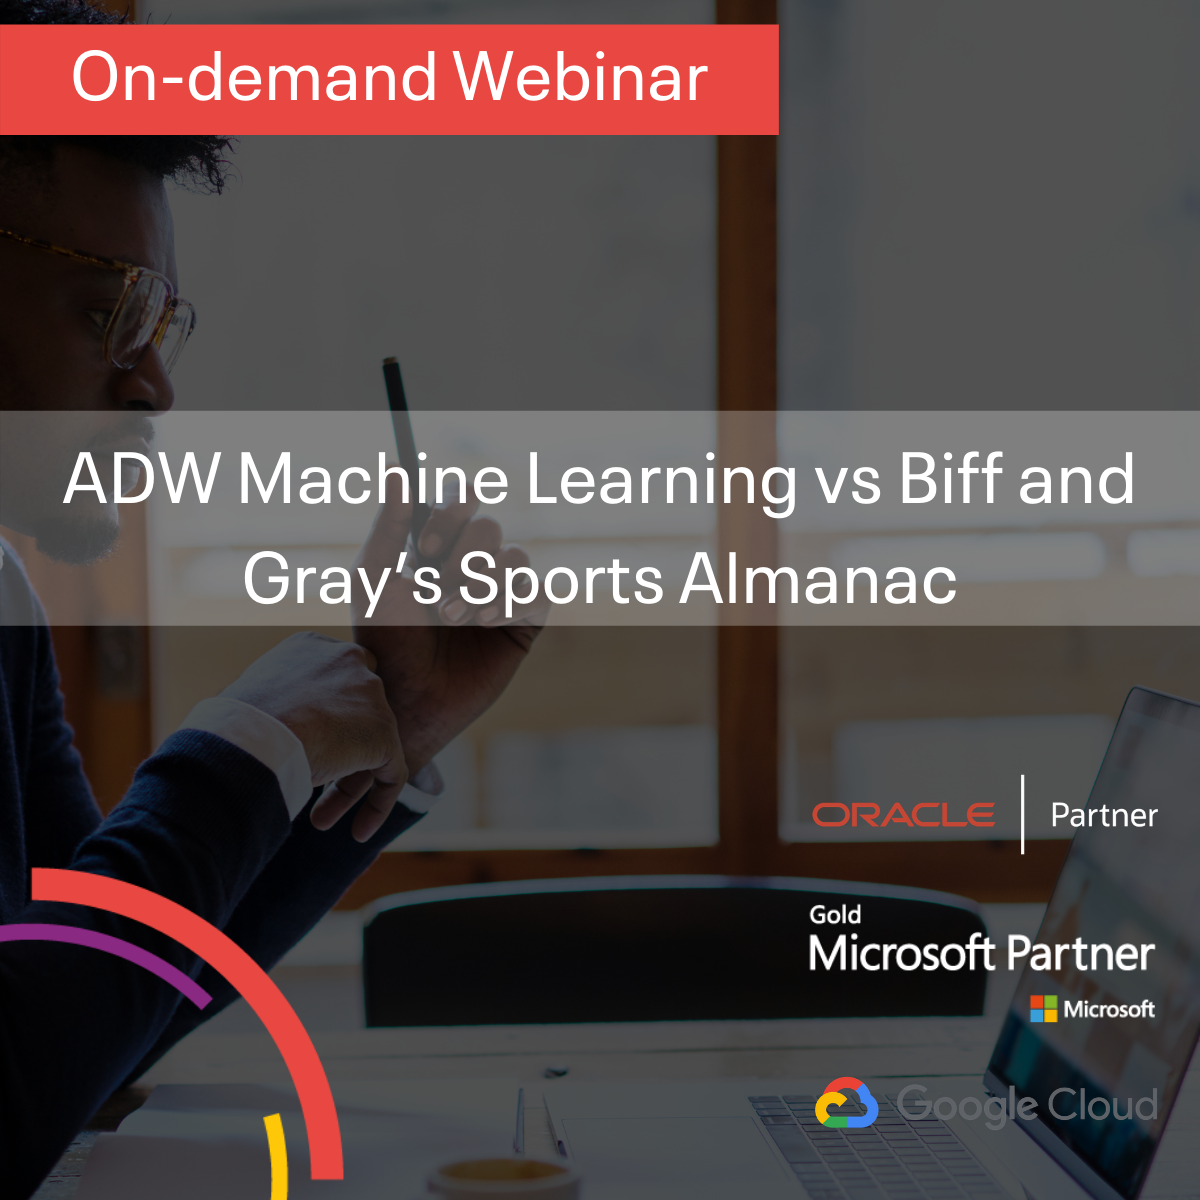 ADW Machine Learning vs Biff and Gray's Sports Almanac